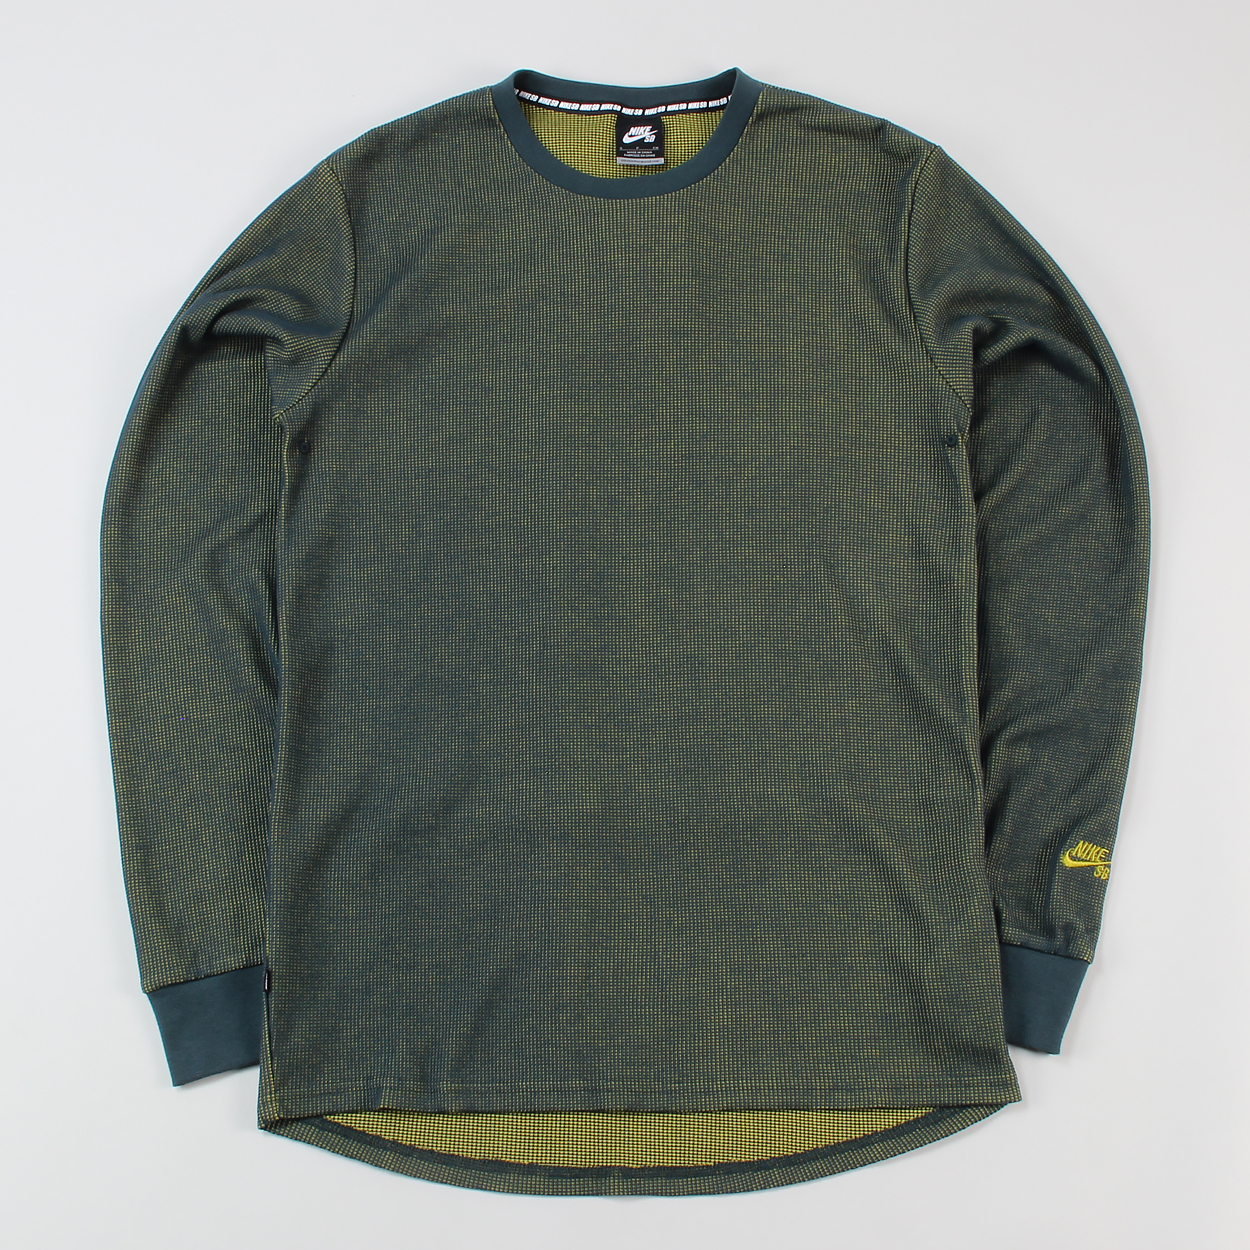 8510a8c33446 Nike SB Mens Cotton Poly Long Sleeve Thermal T Shirt Green £26.25